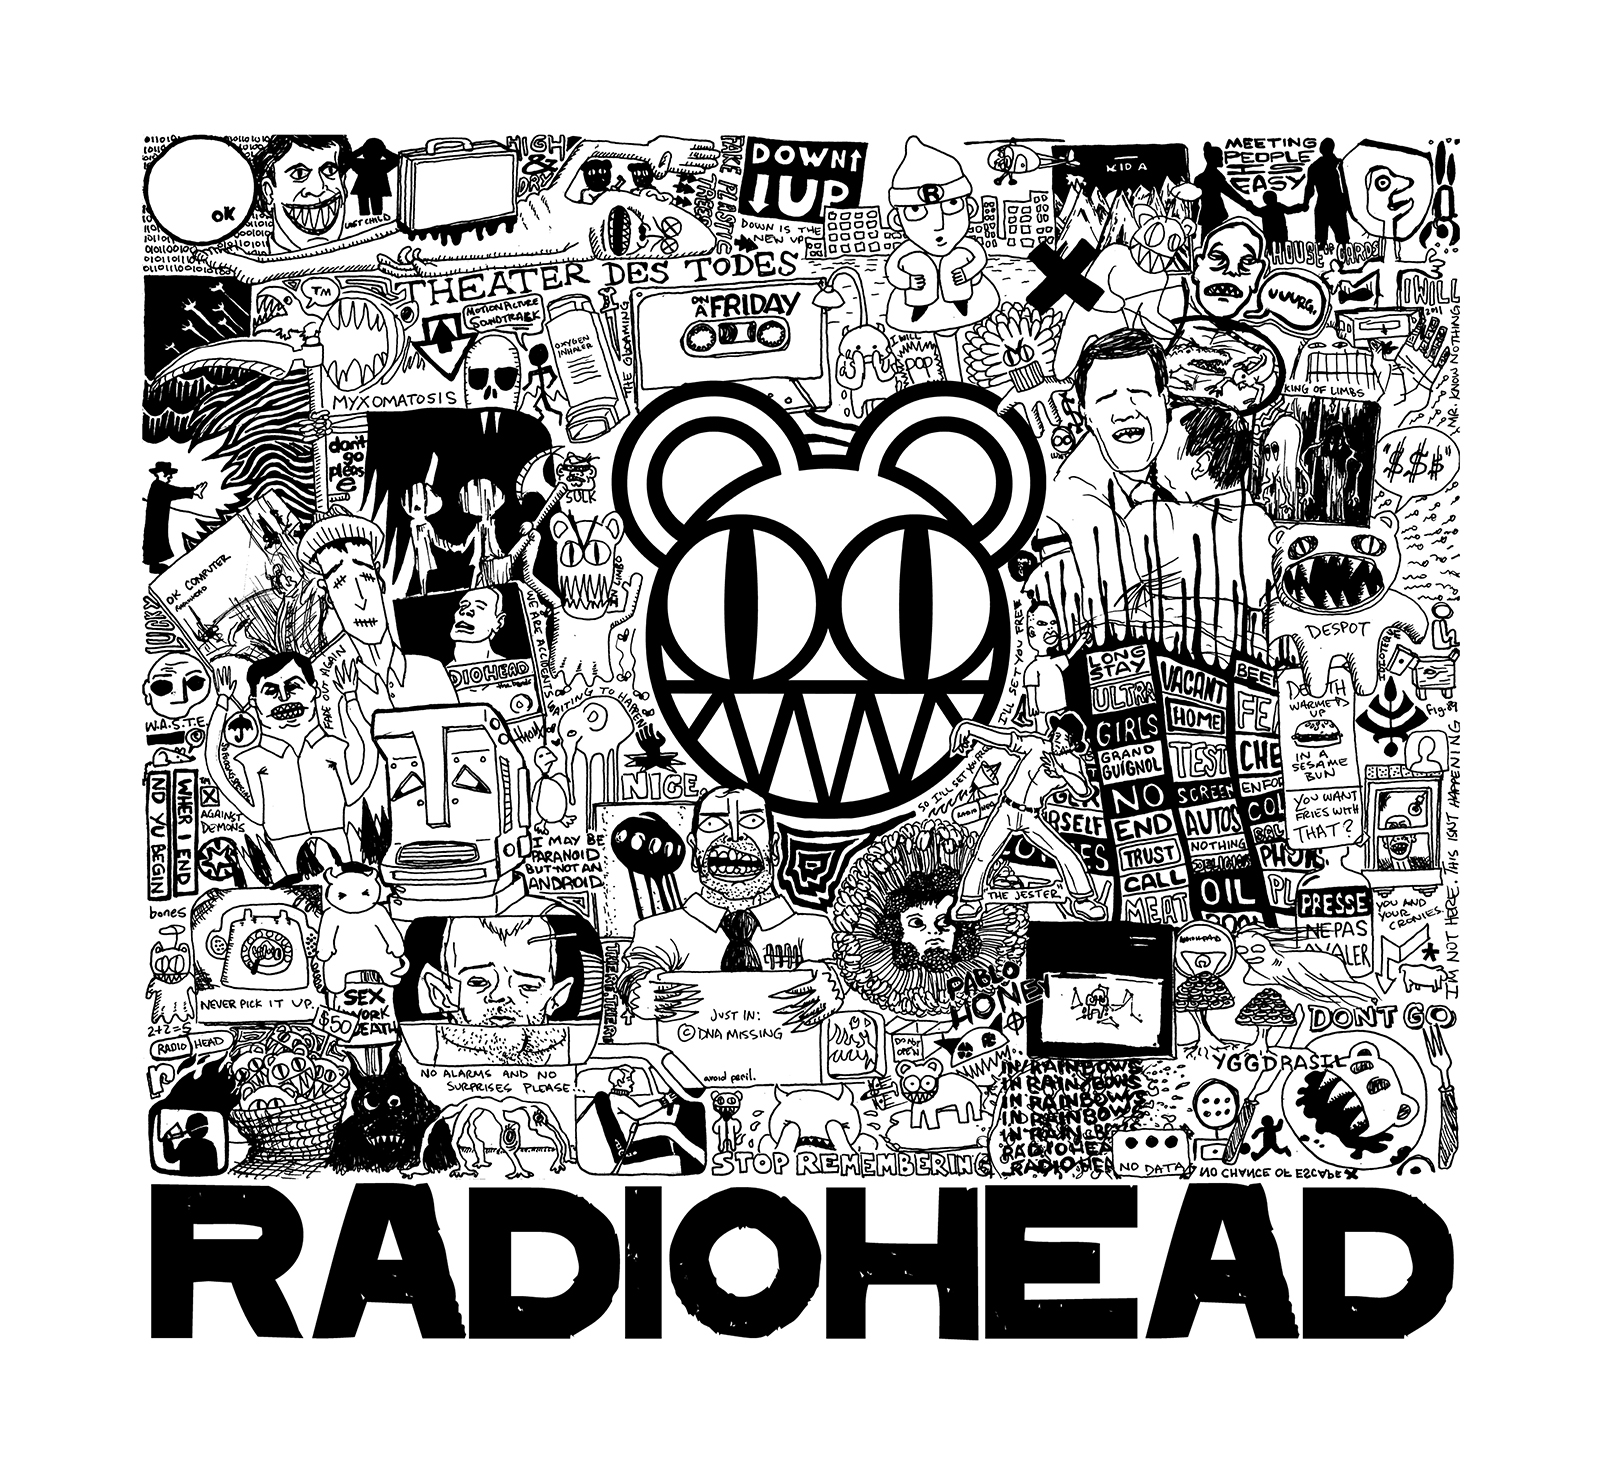 Poster art and limited-edition print for Radiohead tribute show in Bakersfield, CA.